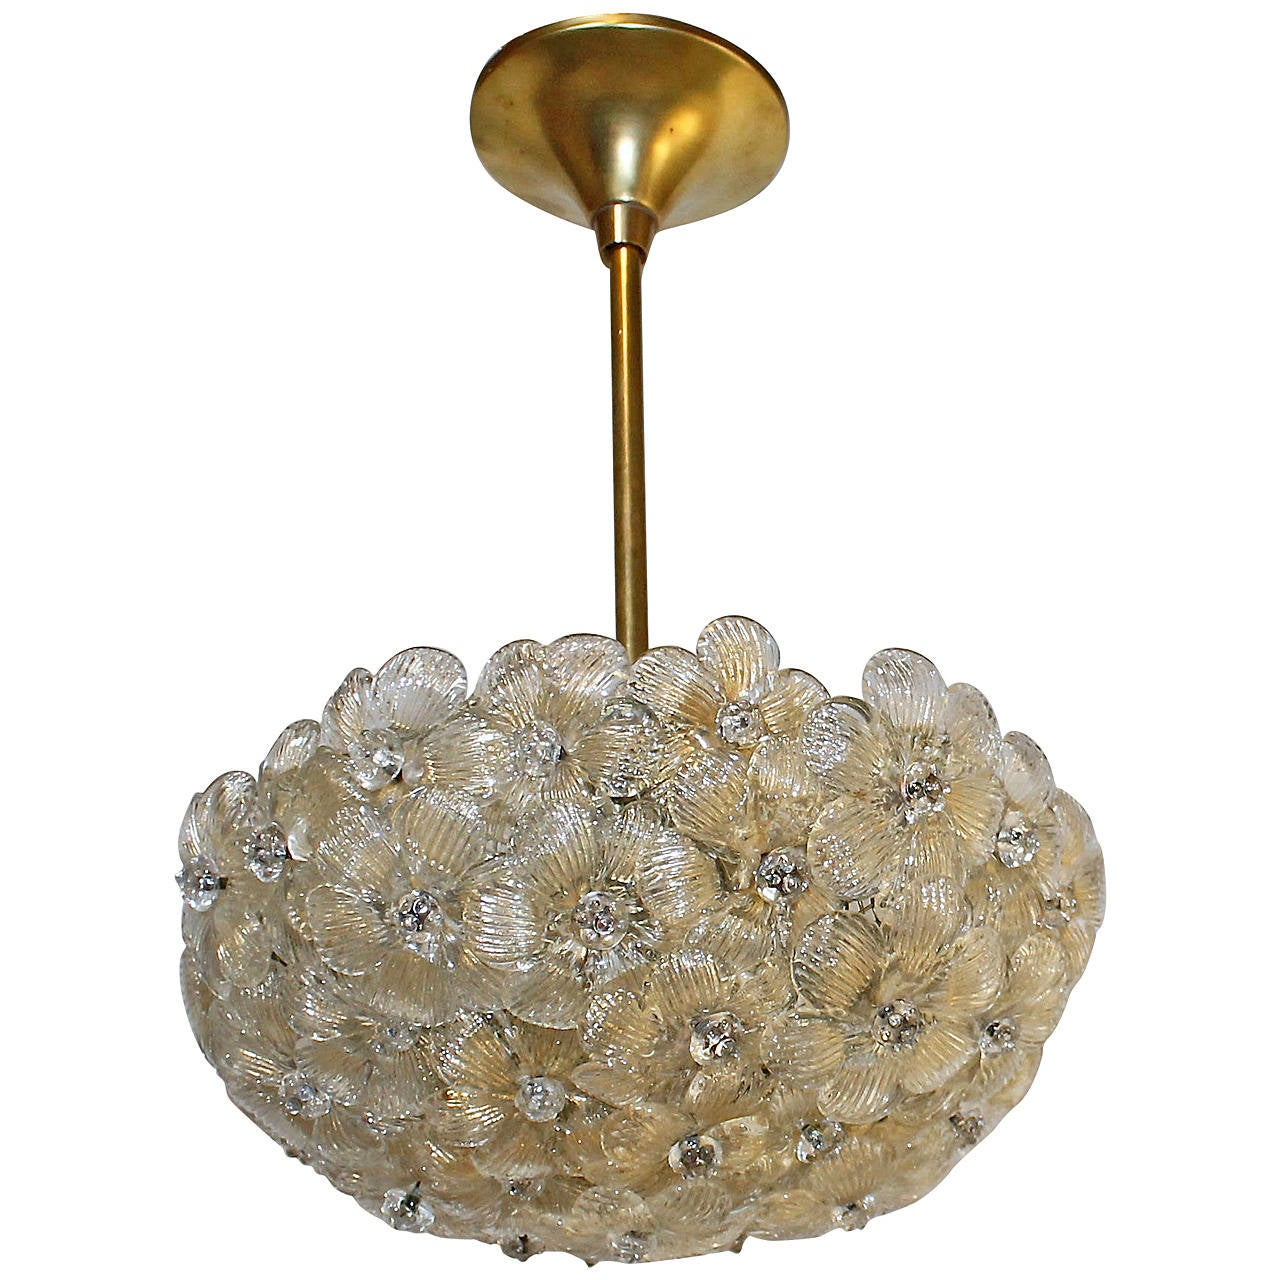 barovier murano glass floral light ceiling pendant for sale at 1stdibs. Black Bedroom Furniture Sets. Home Design Ideas